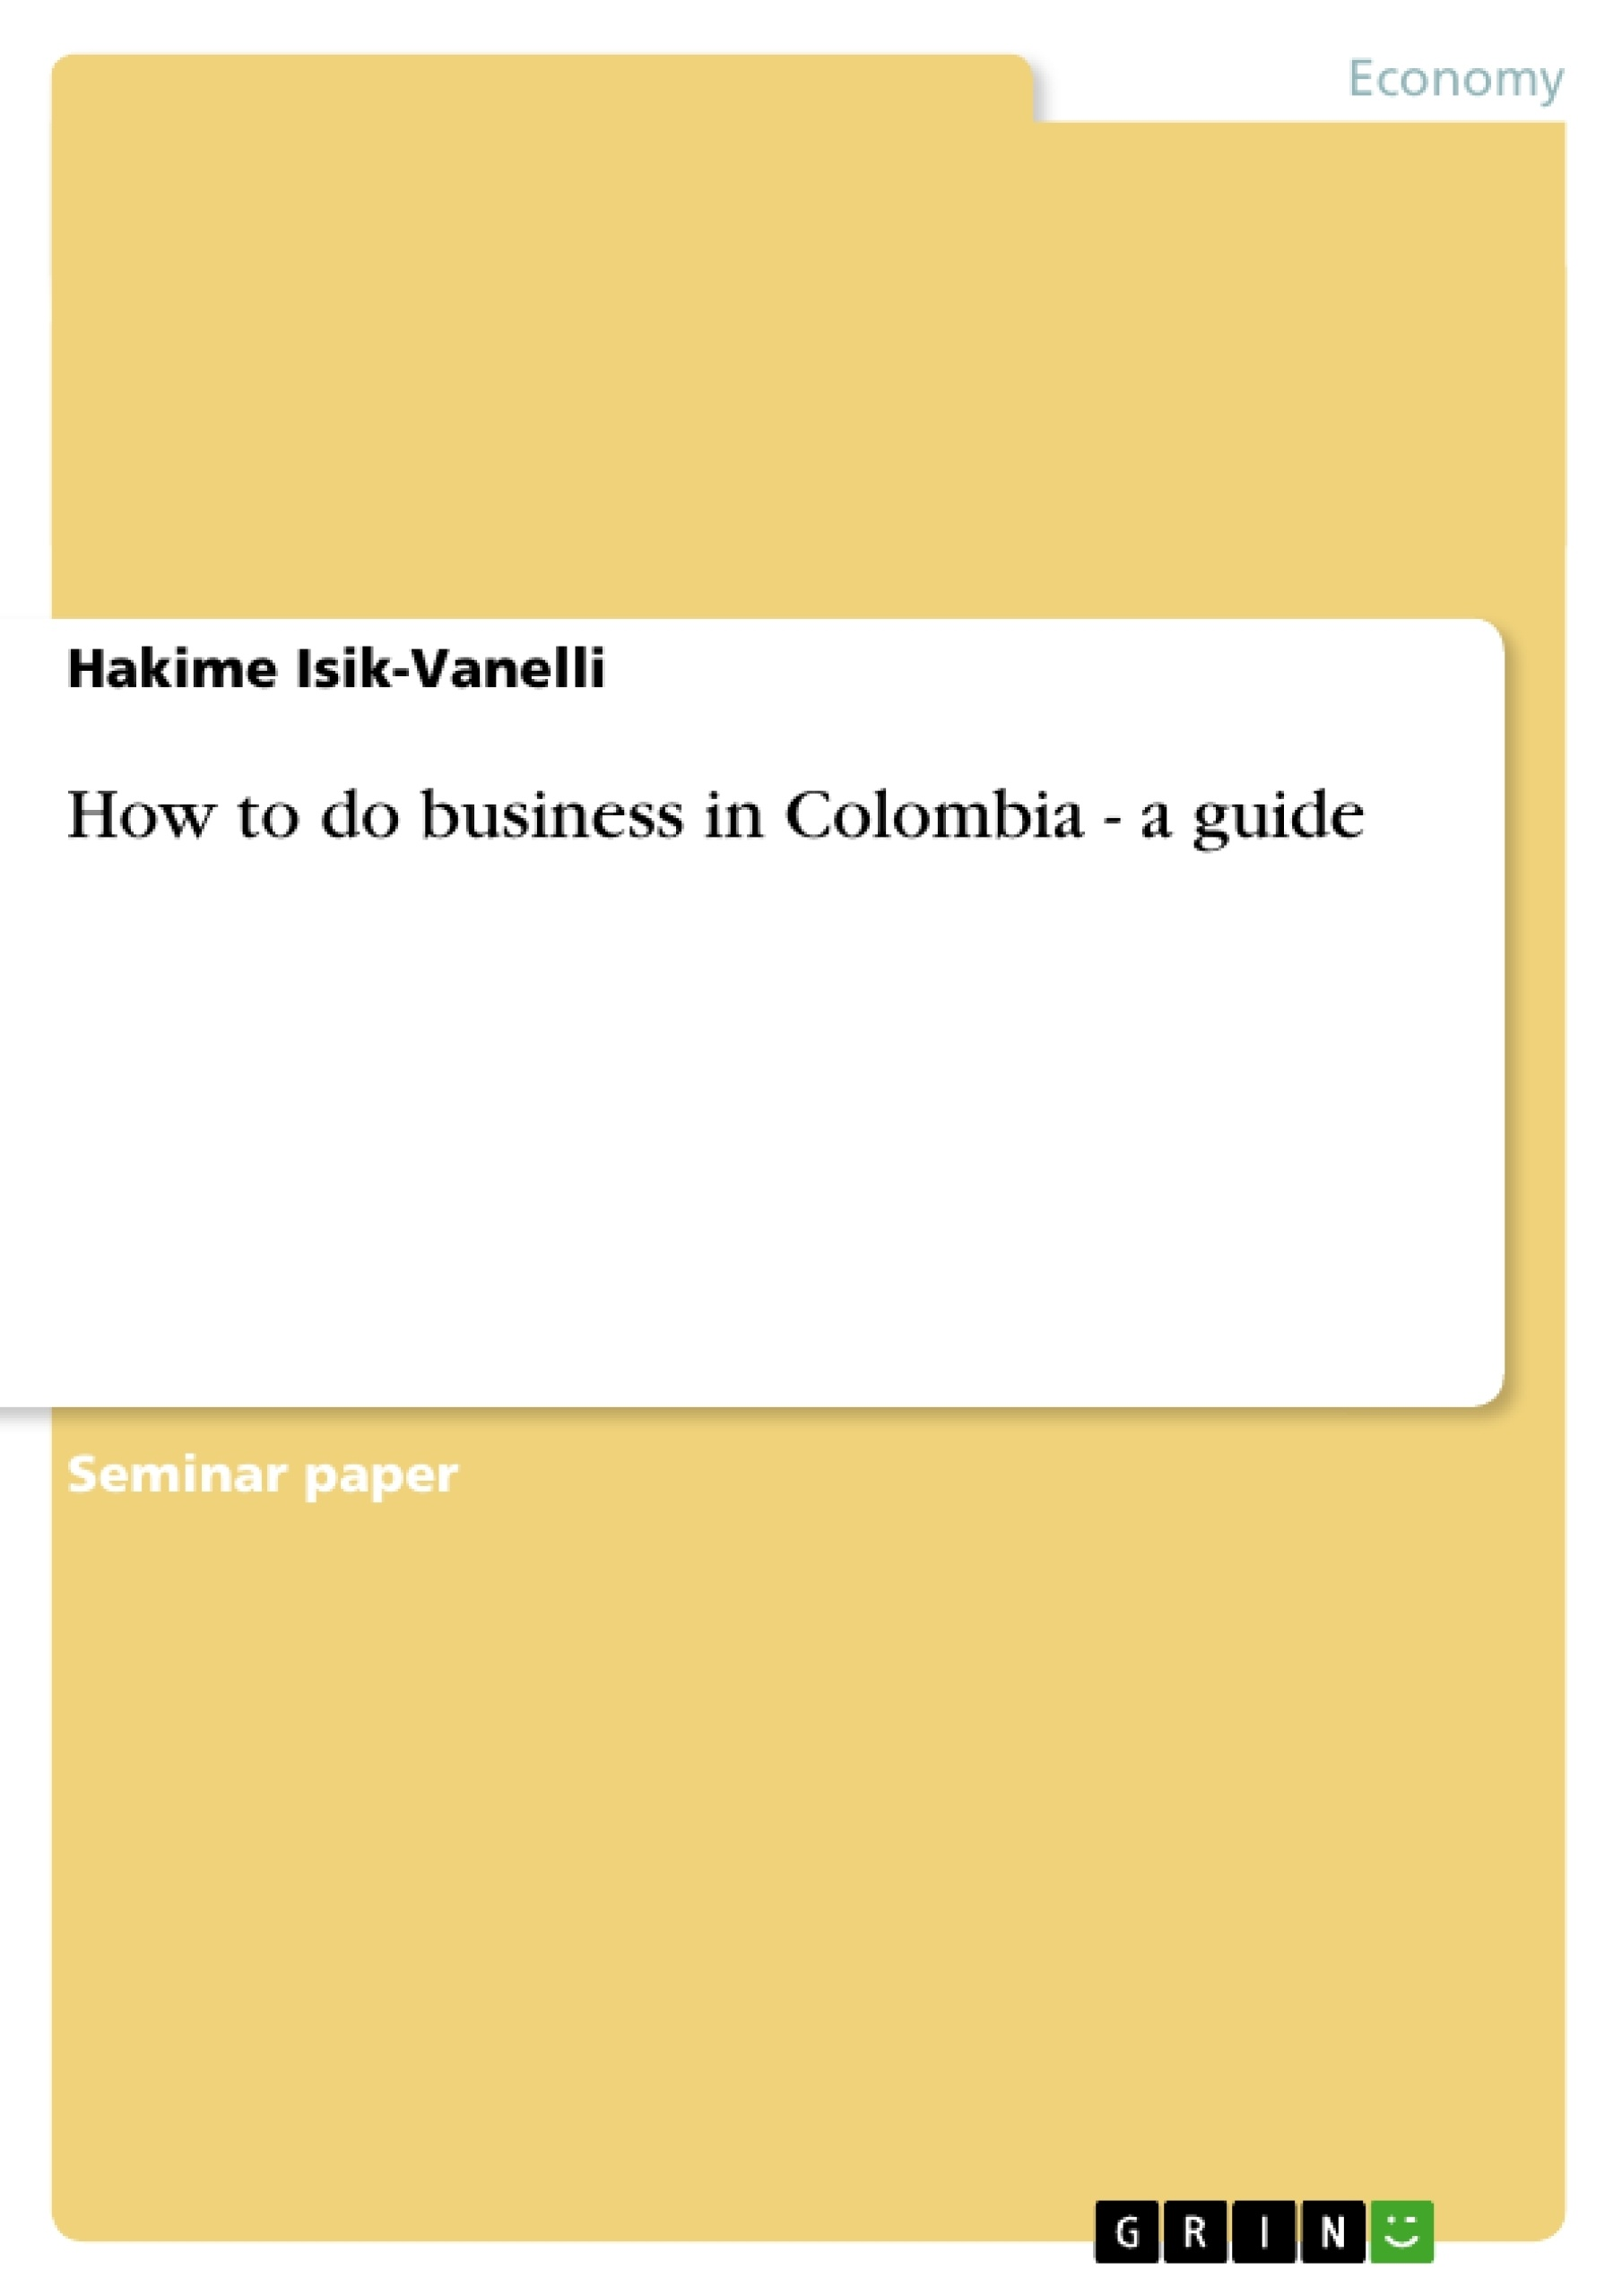 Title: How to do business in Colombia - a guide